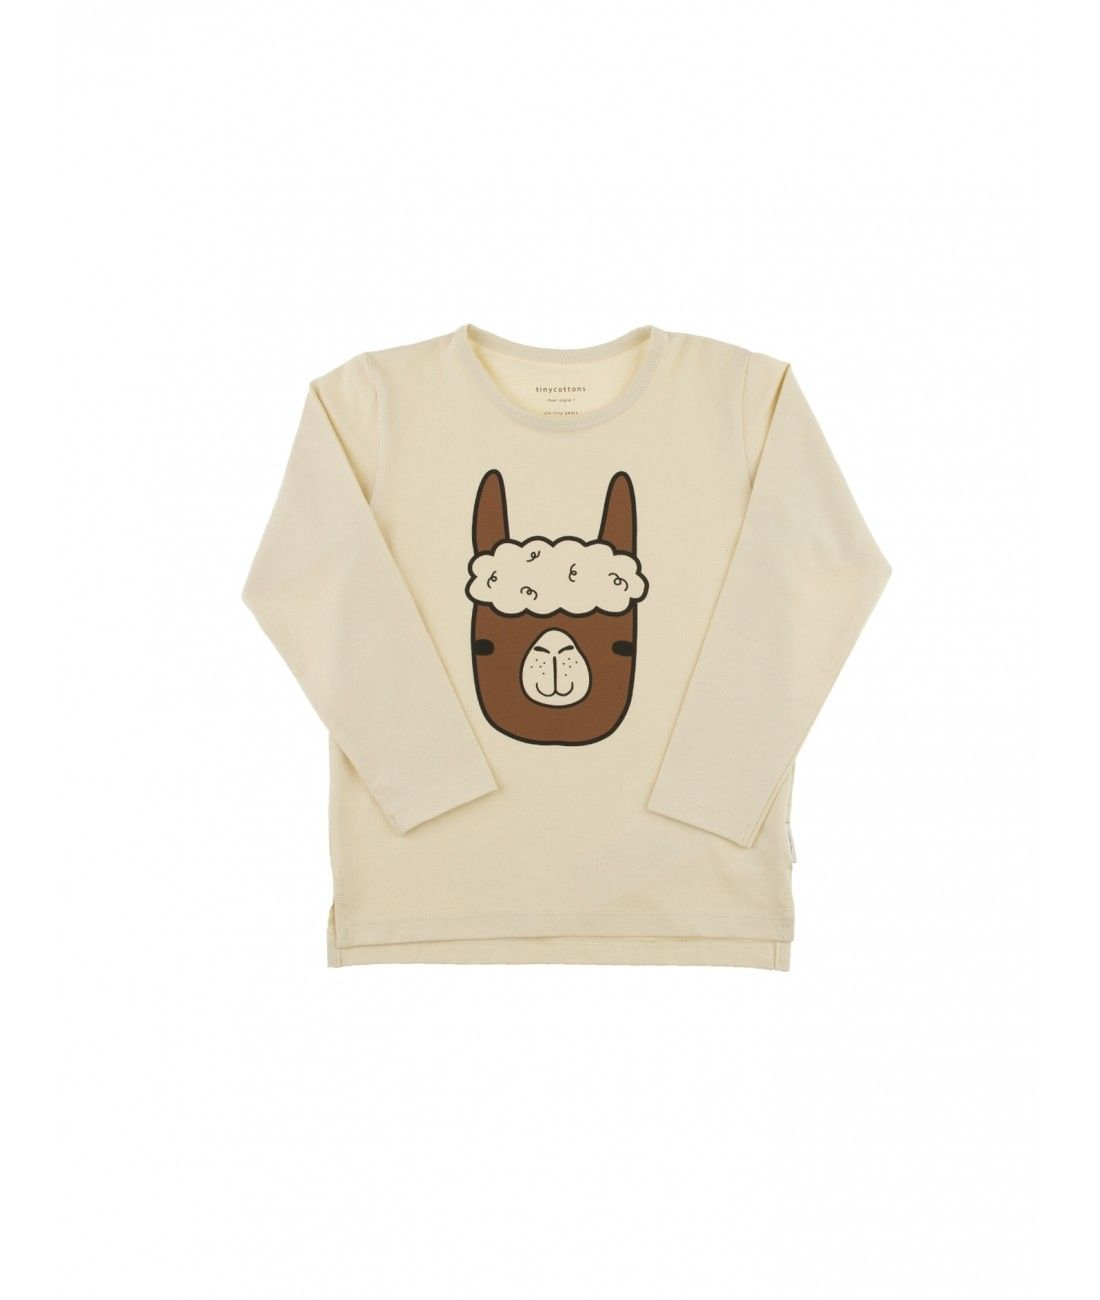 6b5de7cea Designer children's clothes & home interiors. The best selection of kids'  clothes and individual design.